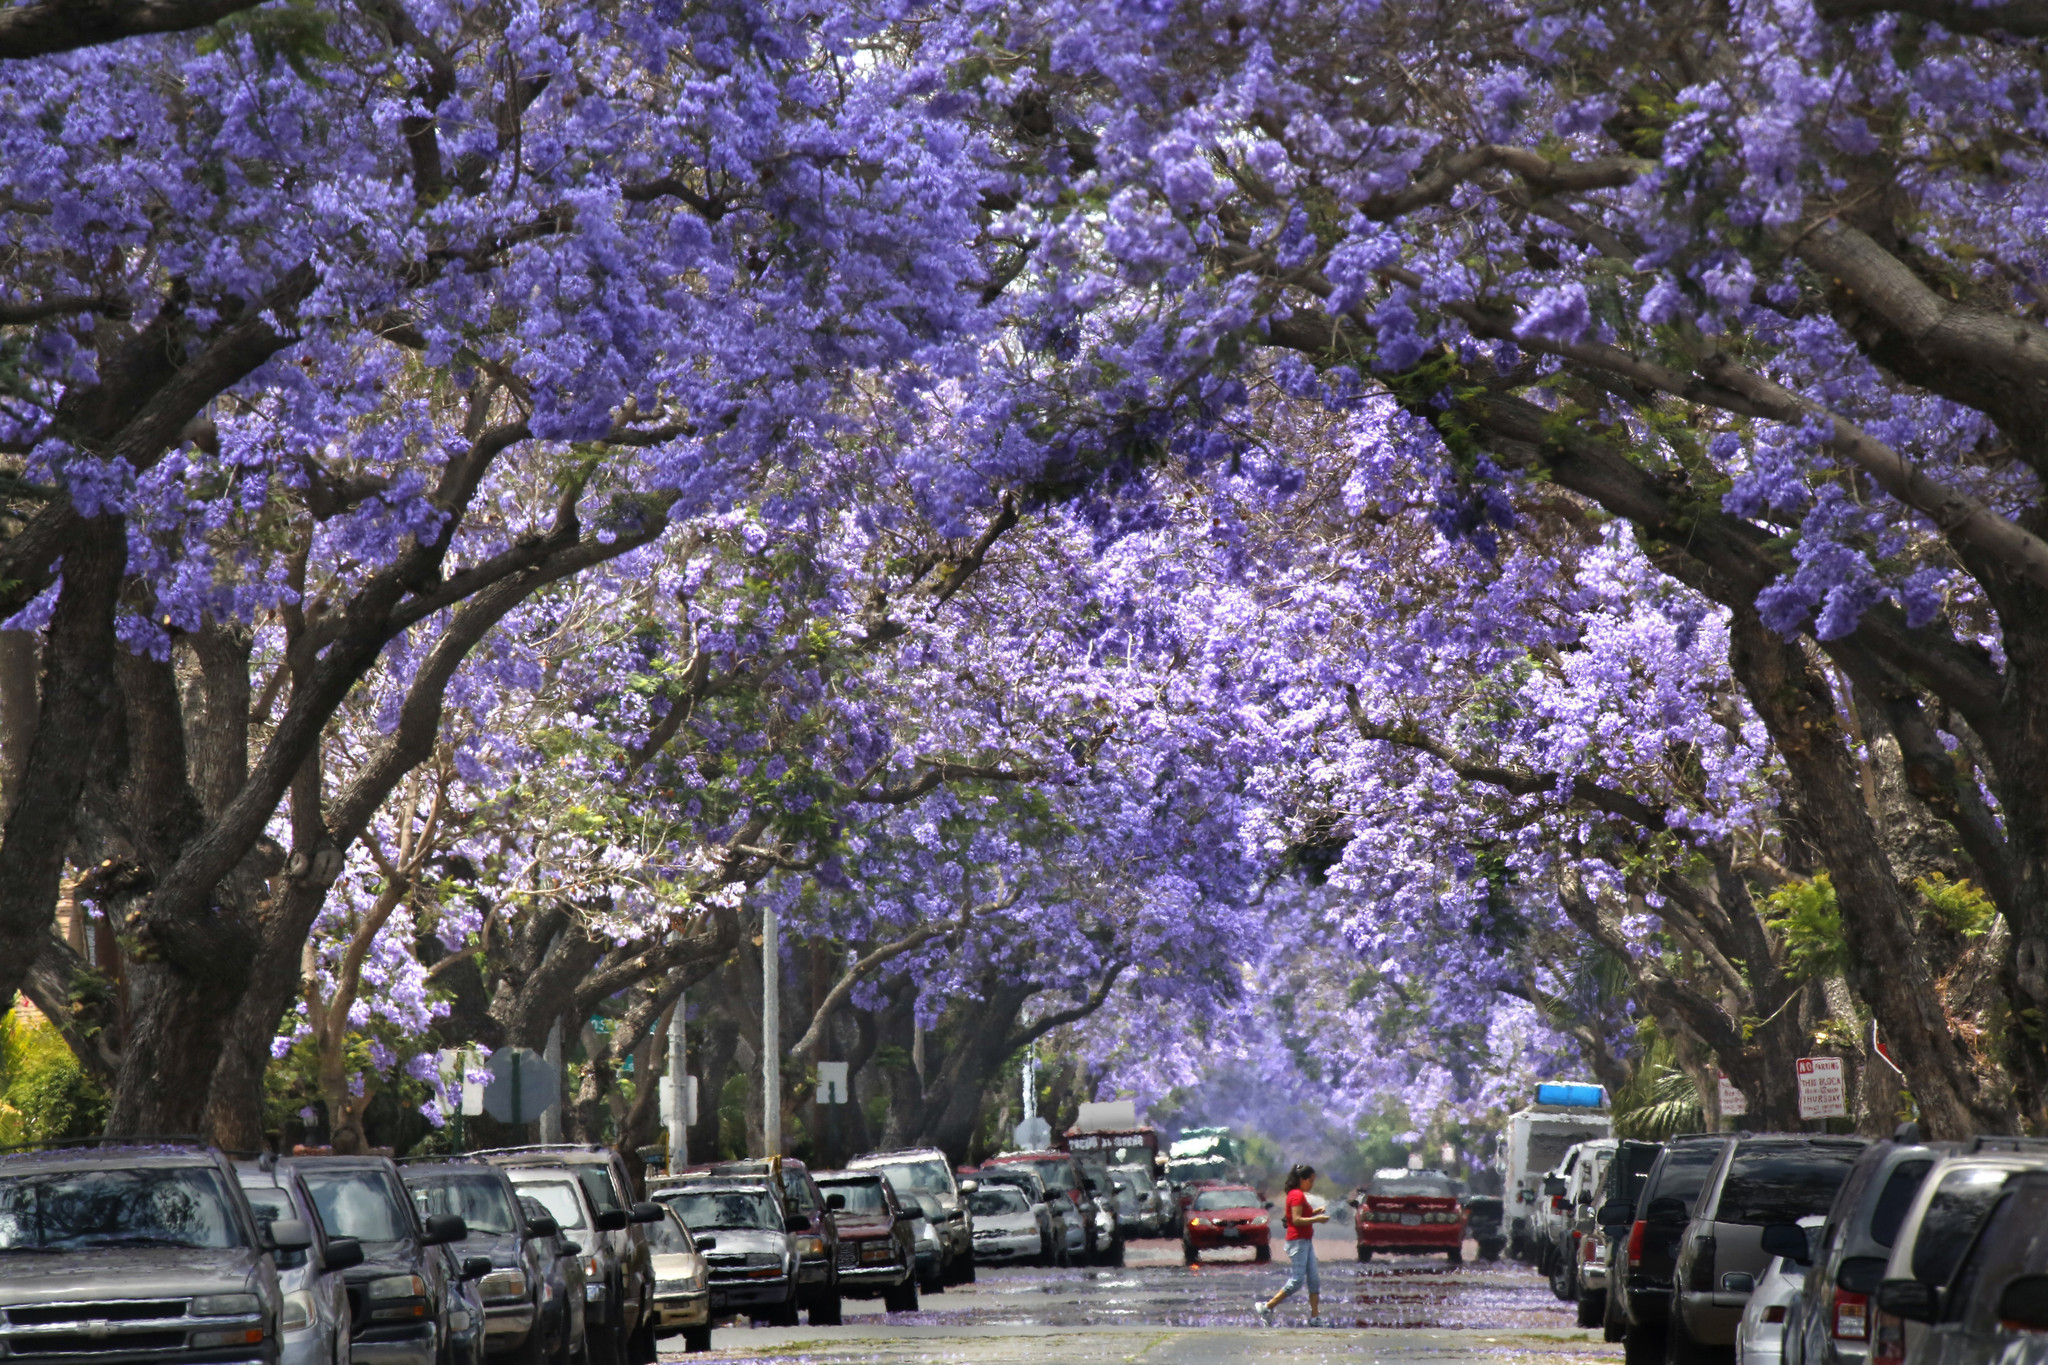 Wallpaper Images Of Fall Trees Lined Lake Jacarandas You Either Love Them Or Hate Them La Times